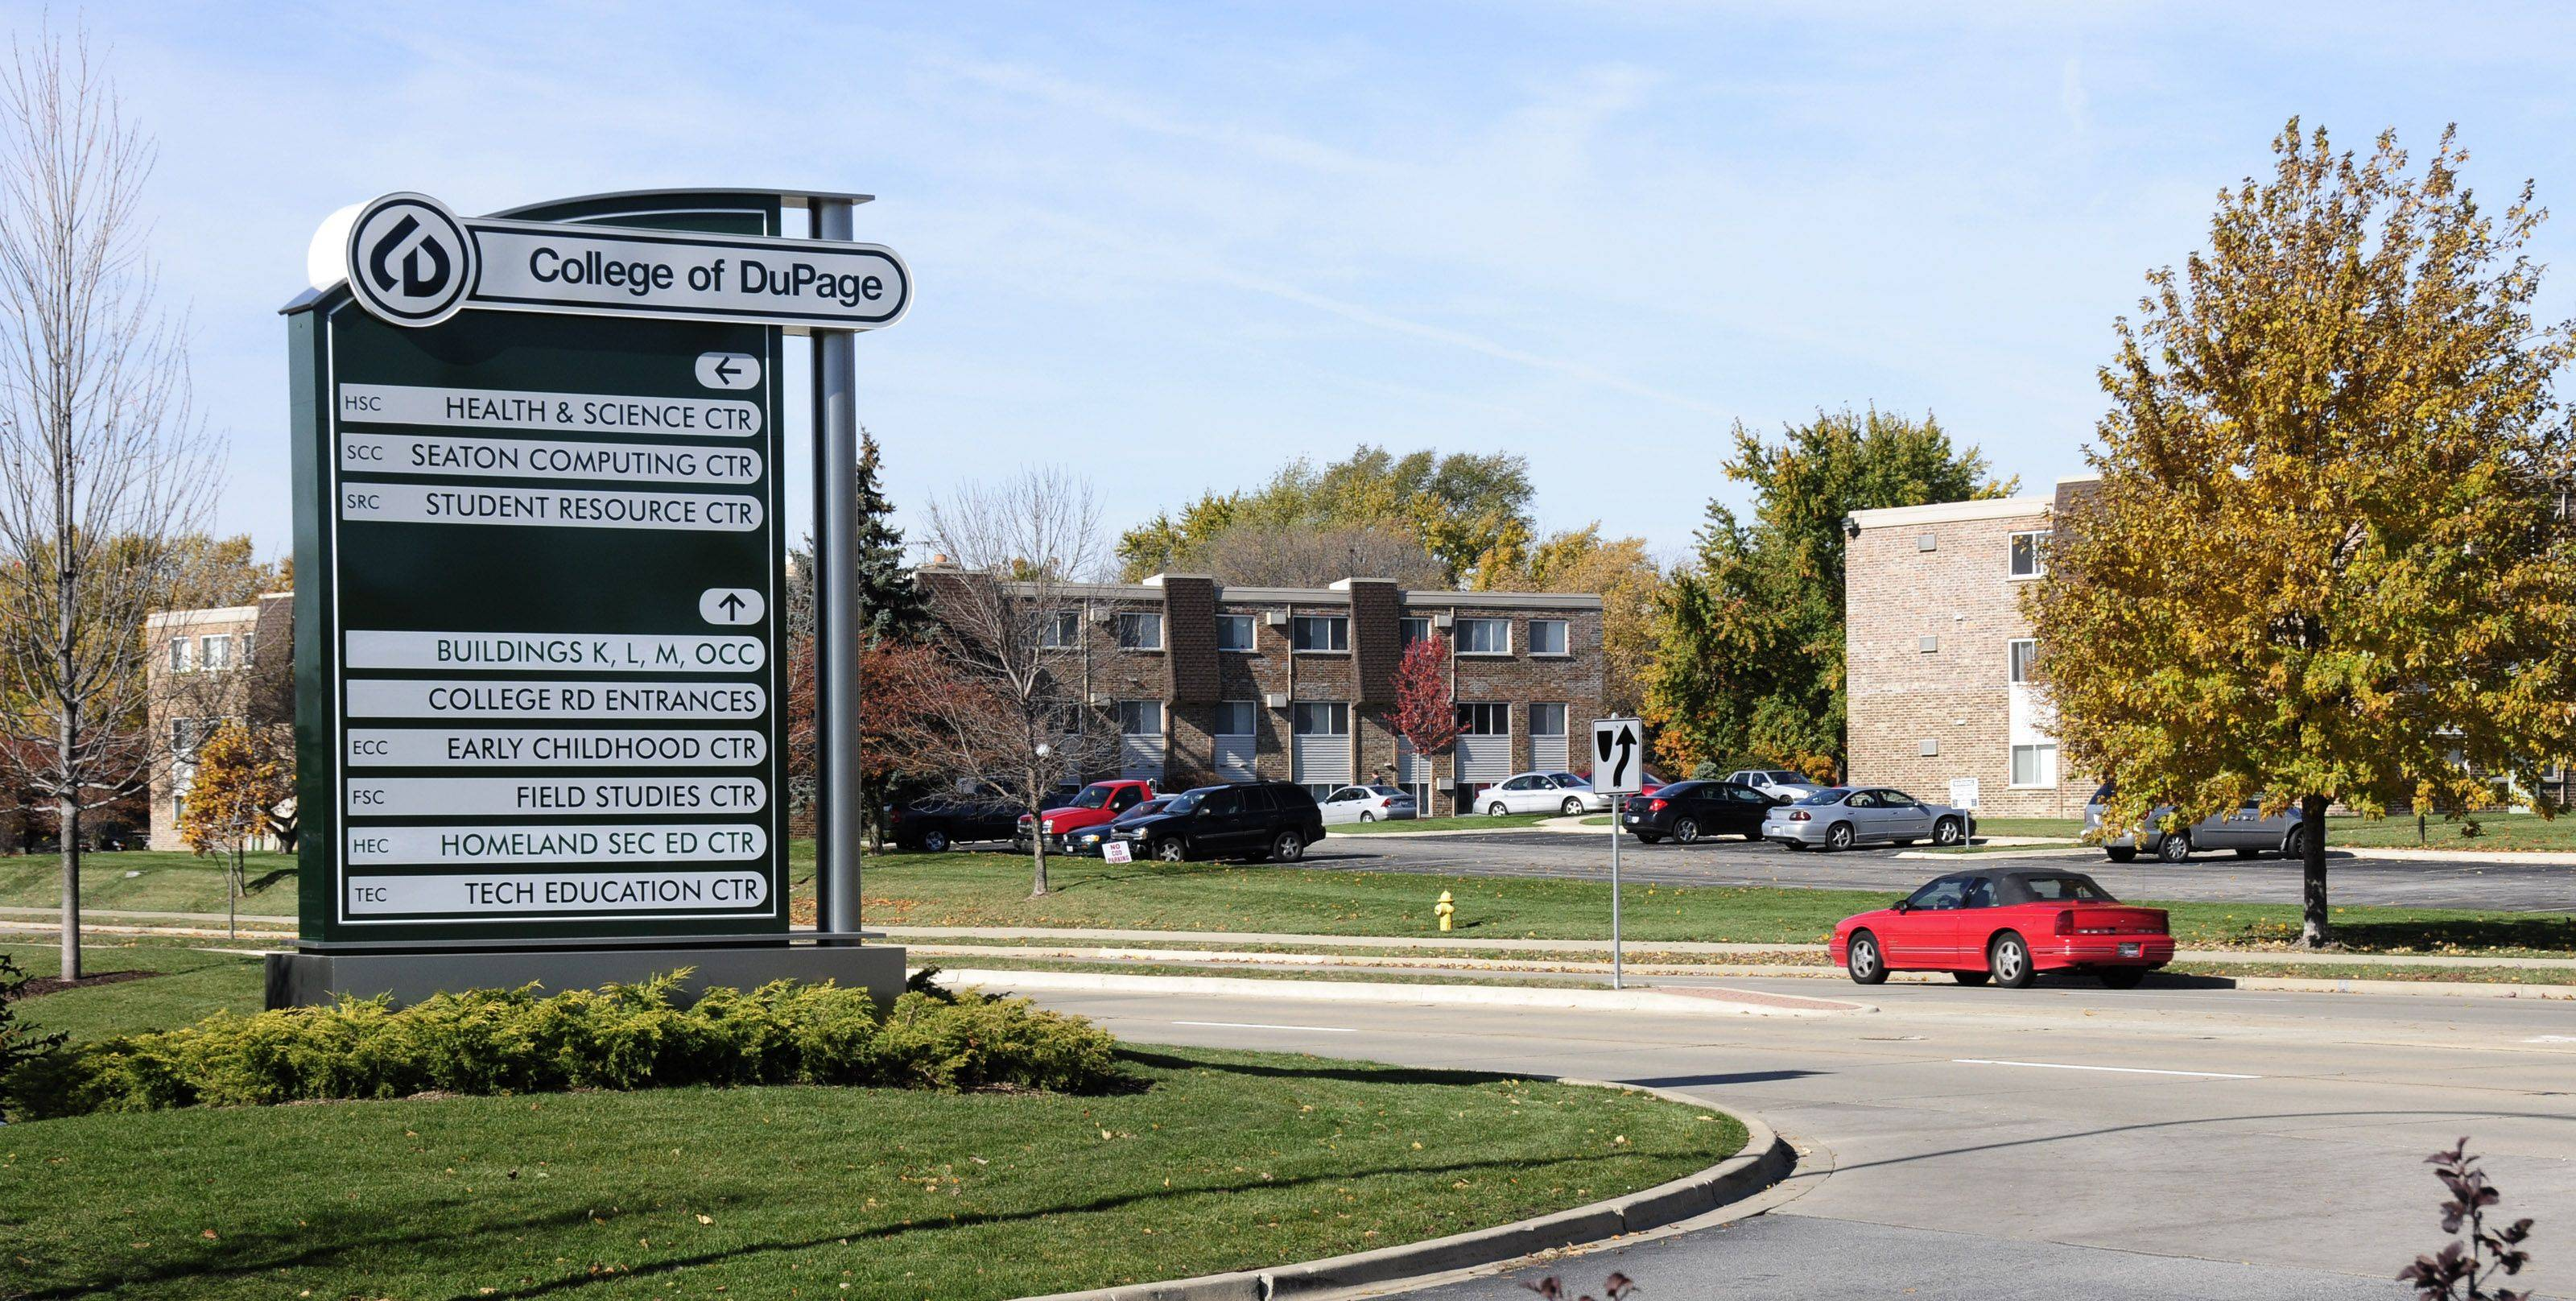 A judge ruled Tuesday that the College of DuPage is not exempt from the jurisdiction of the village of Glen Ellyn.